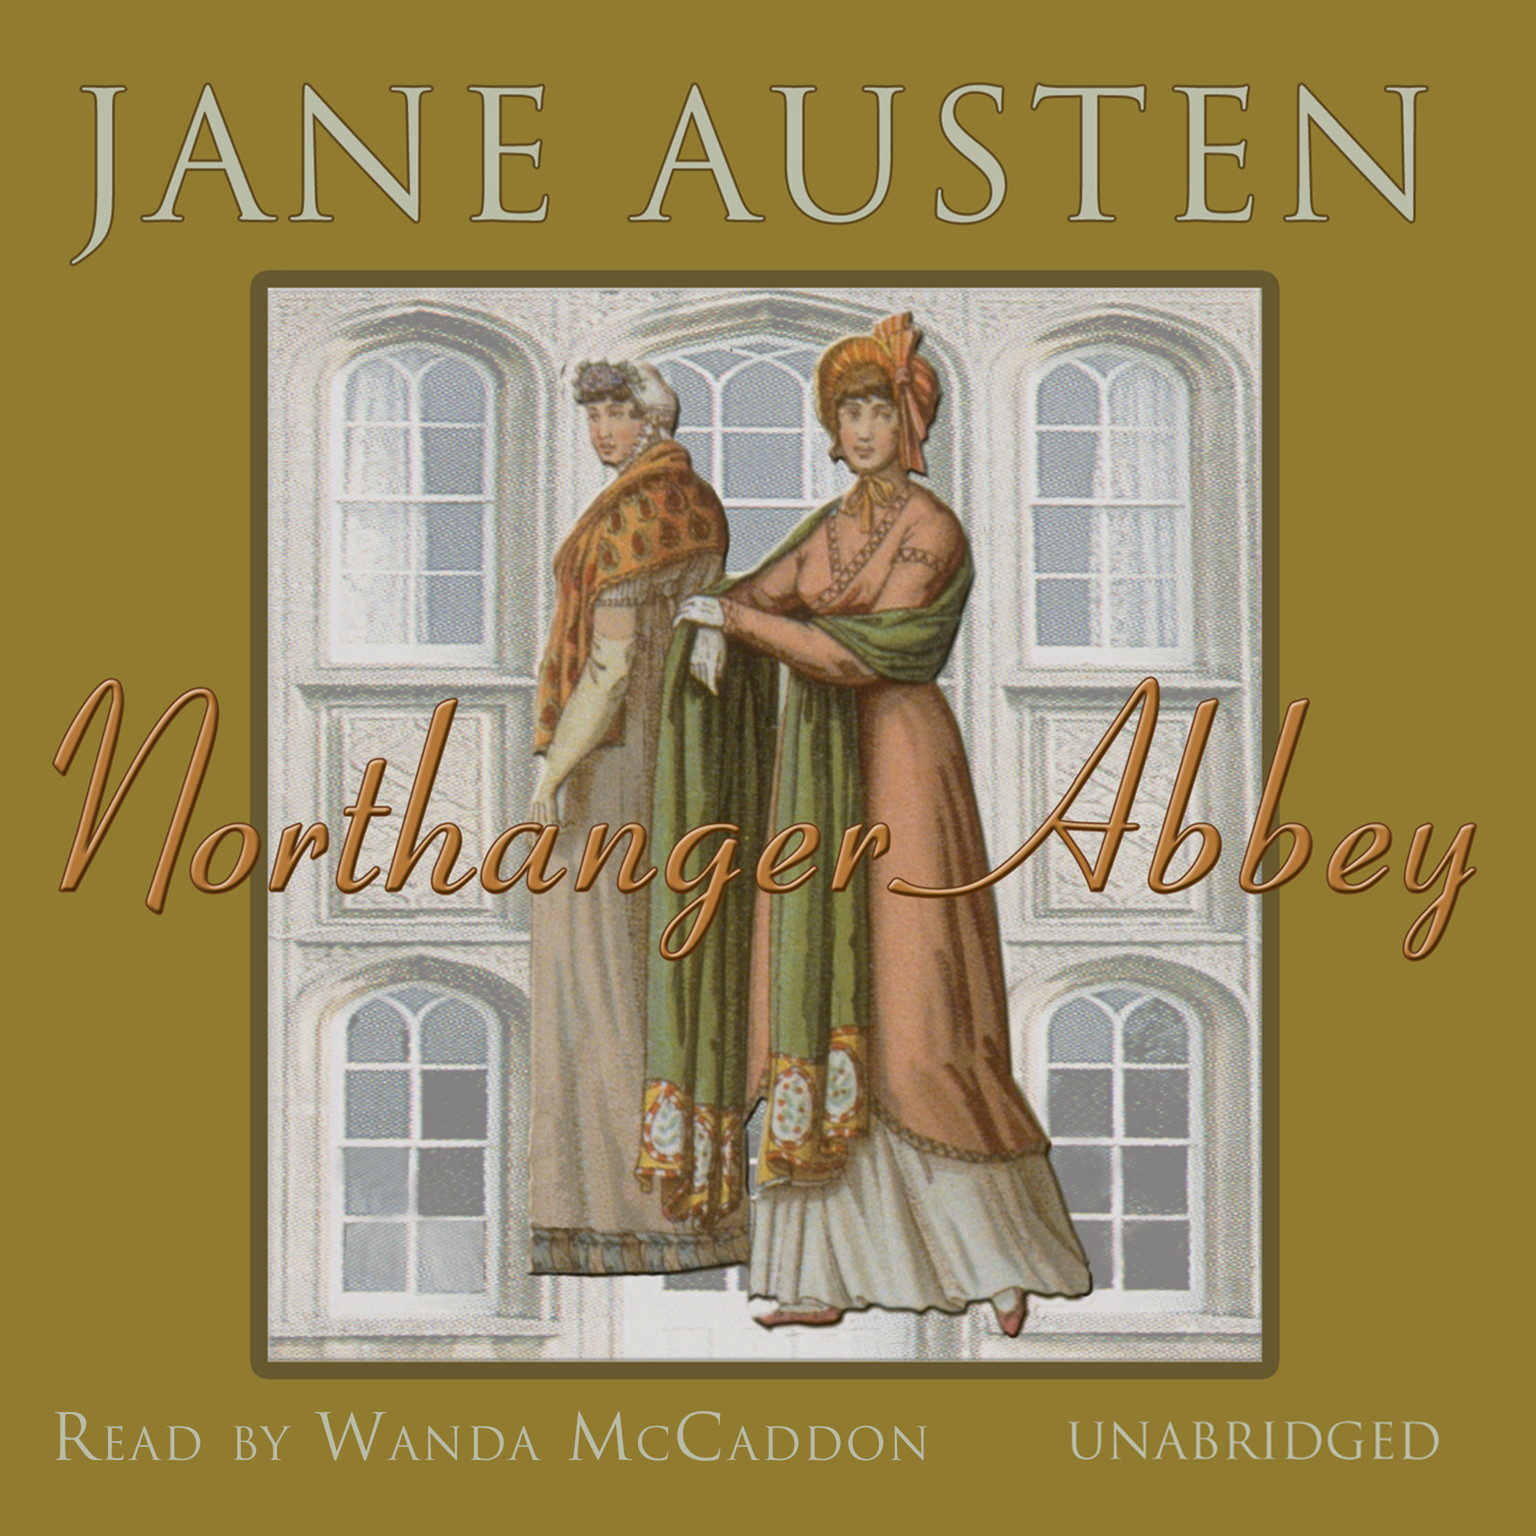 the portrayal and ideologies of women in the 19th century in northanger abbey a novel by jane austen Teaching jane austen's northanger abbey as a by women writers, end with austen  late eighteenth-century text and an early nineteenth-century novel.